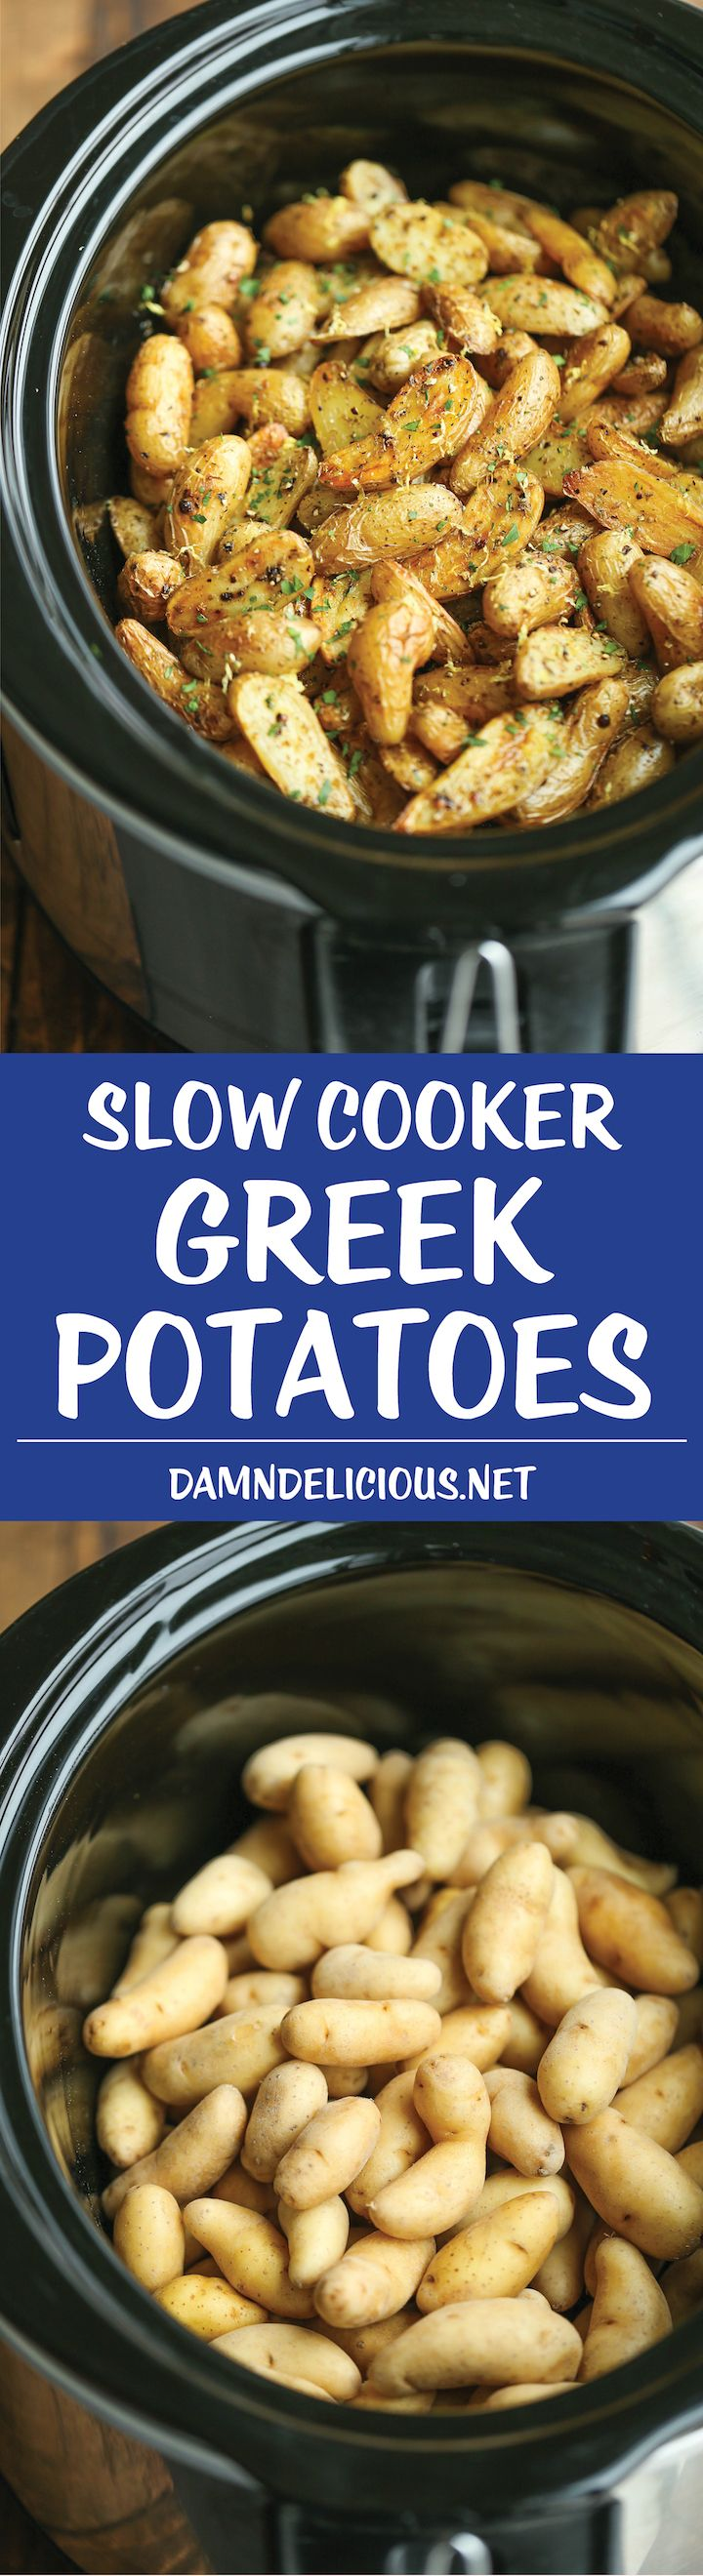 Slow Cooker Greek Potatoes - Buttery crisp-tender potatoes with olive oil, garlic, lemon and oregano. Made so easily in the crockpot - less than 5 min prep!